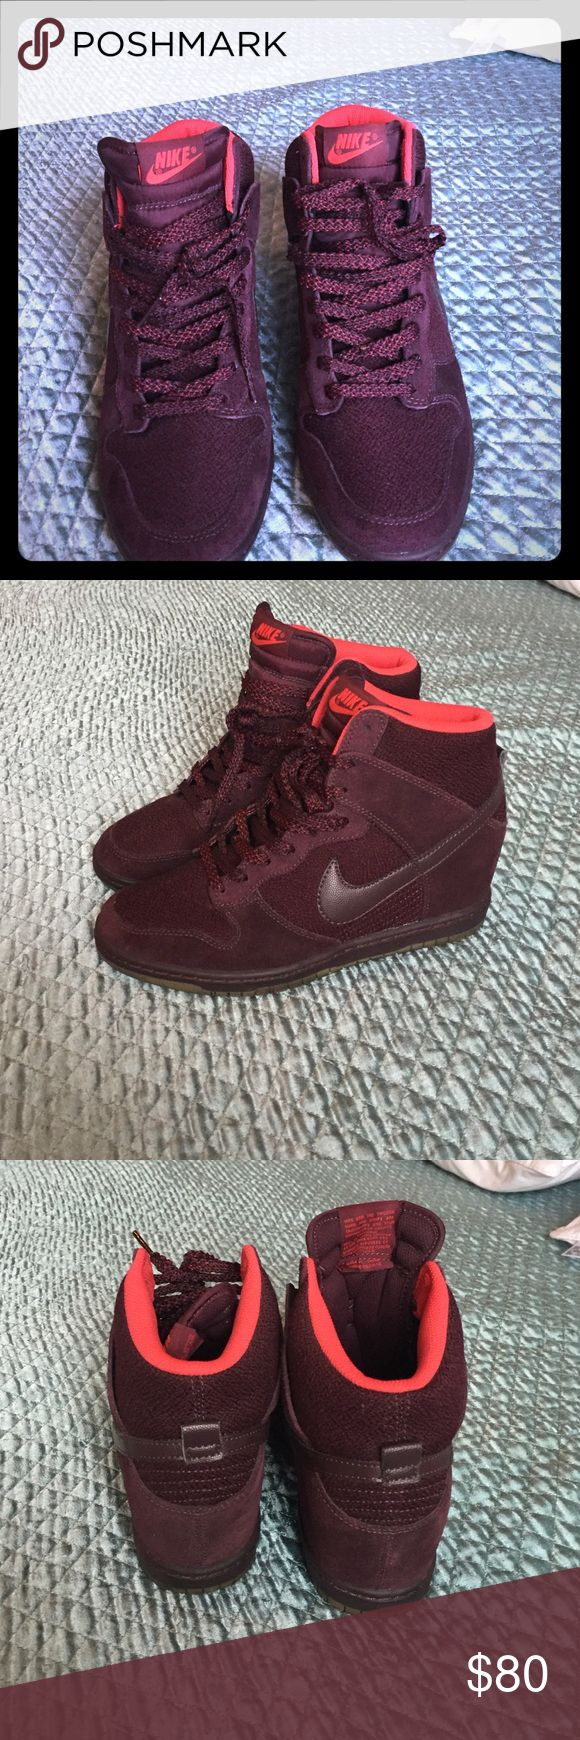 Nike dunk wedge sneaker Burgundy nike dunks, like new, only wore few times. Size 8 1/2 Nike Shoes Athletic Shoes